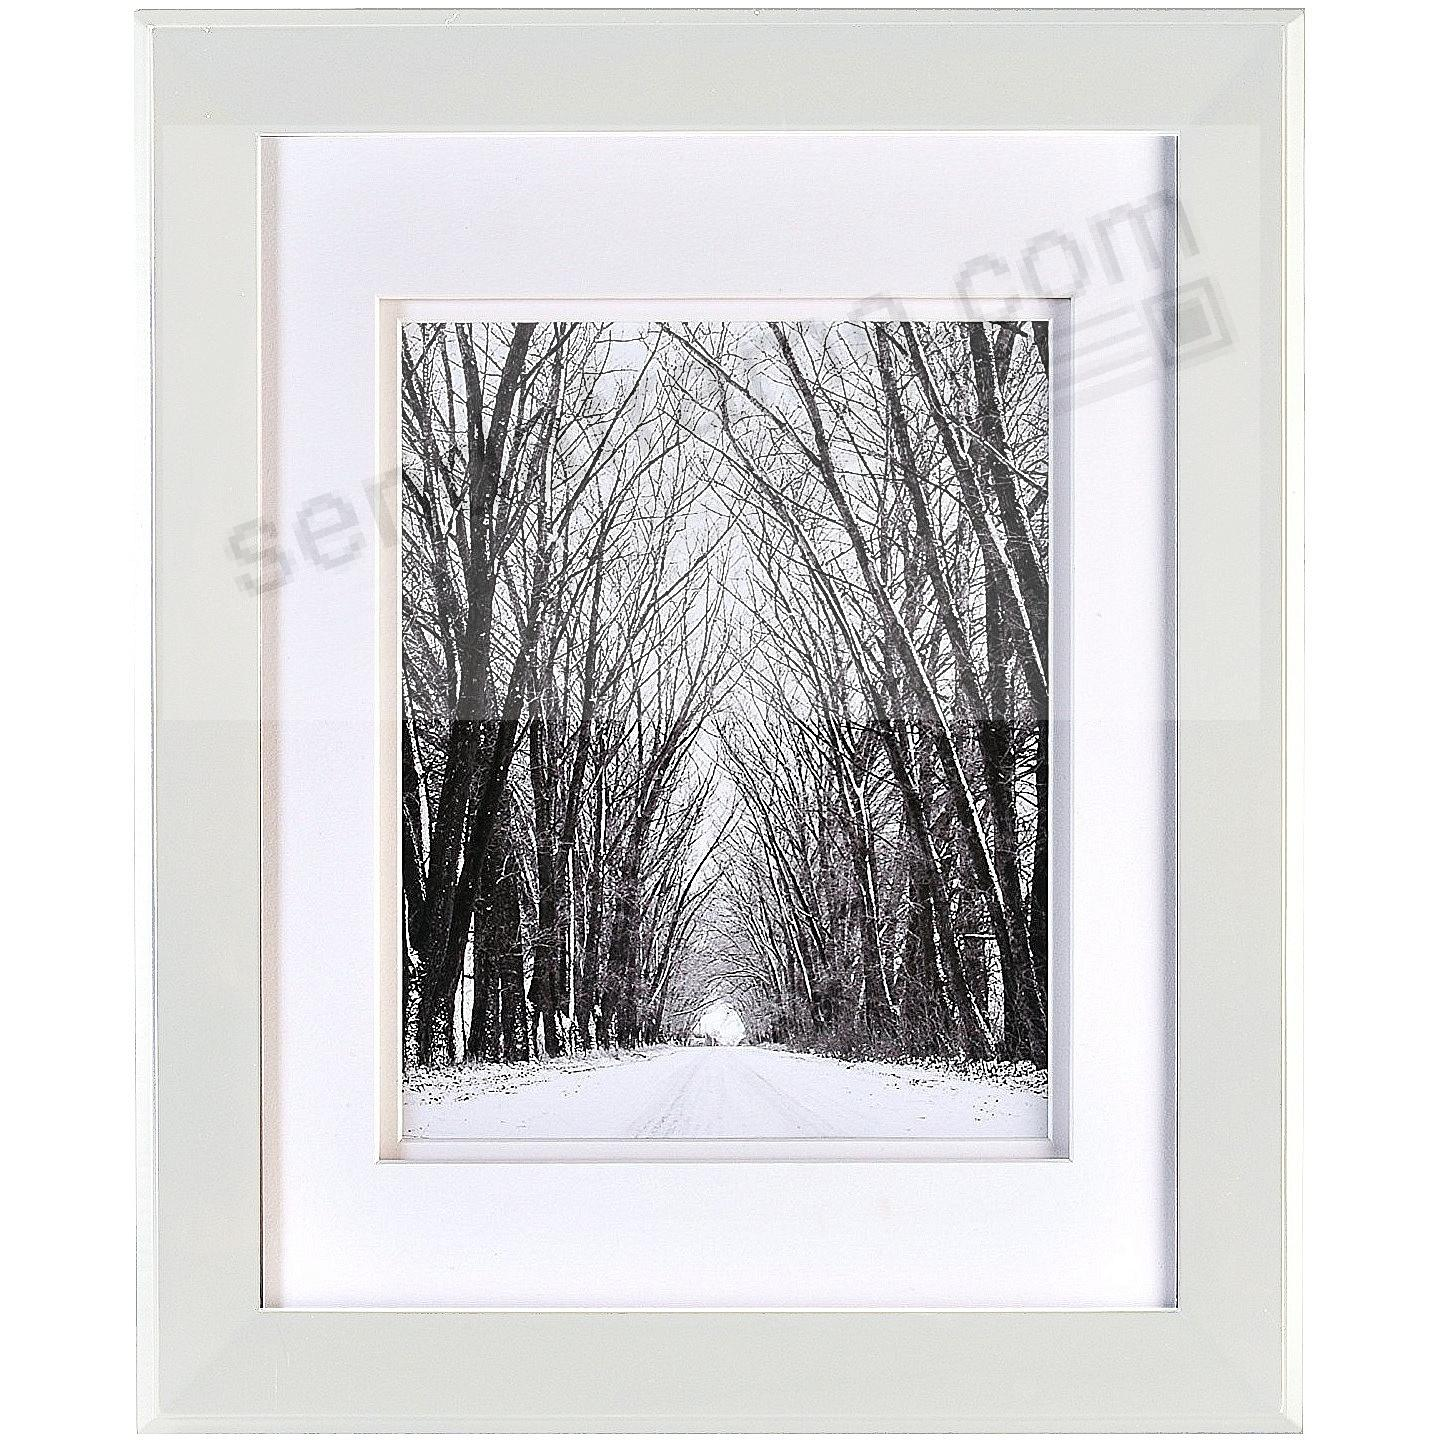 CHELSEA White Wood 8x10/5x7 DBL-Matted Frame from ARTCARE® by Nielsen®